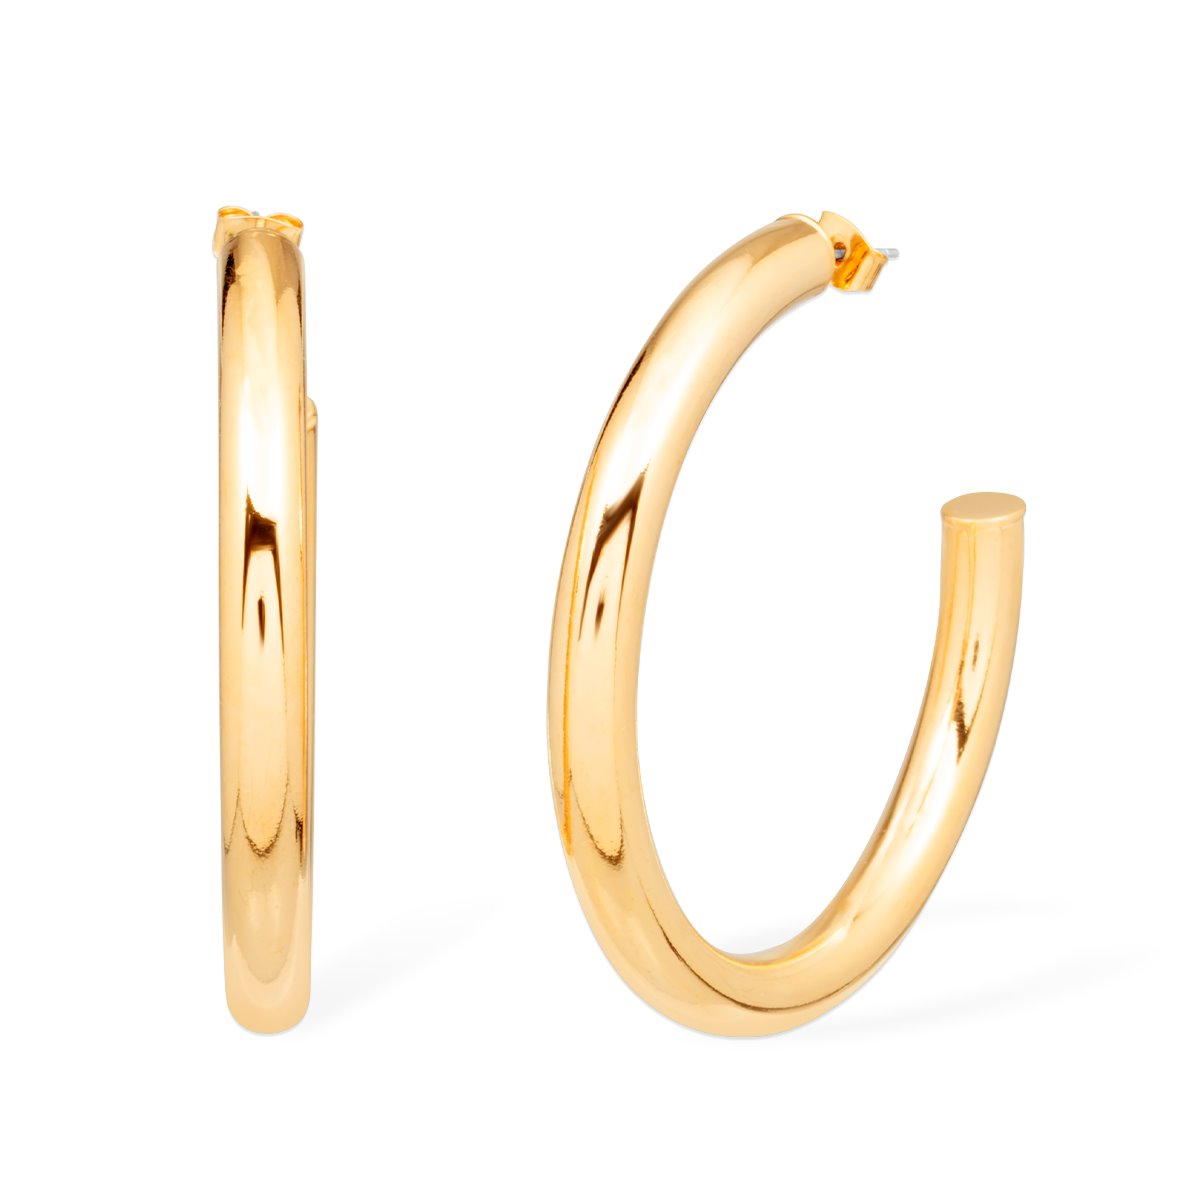 Jennifer Hoop Earrings forevercrystals Gold